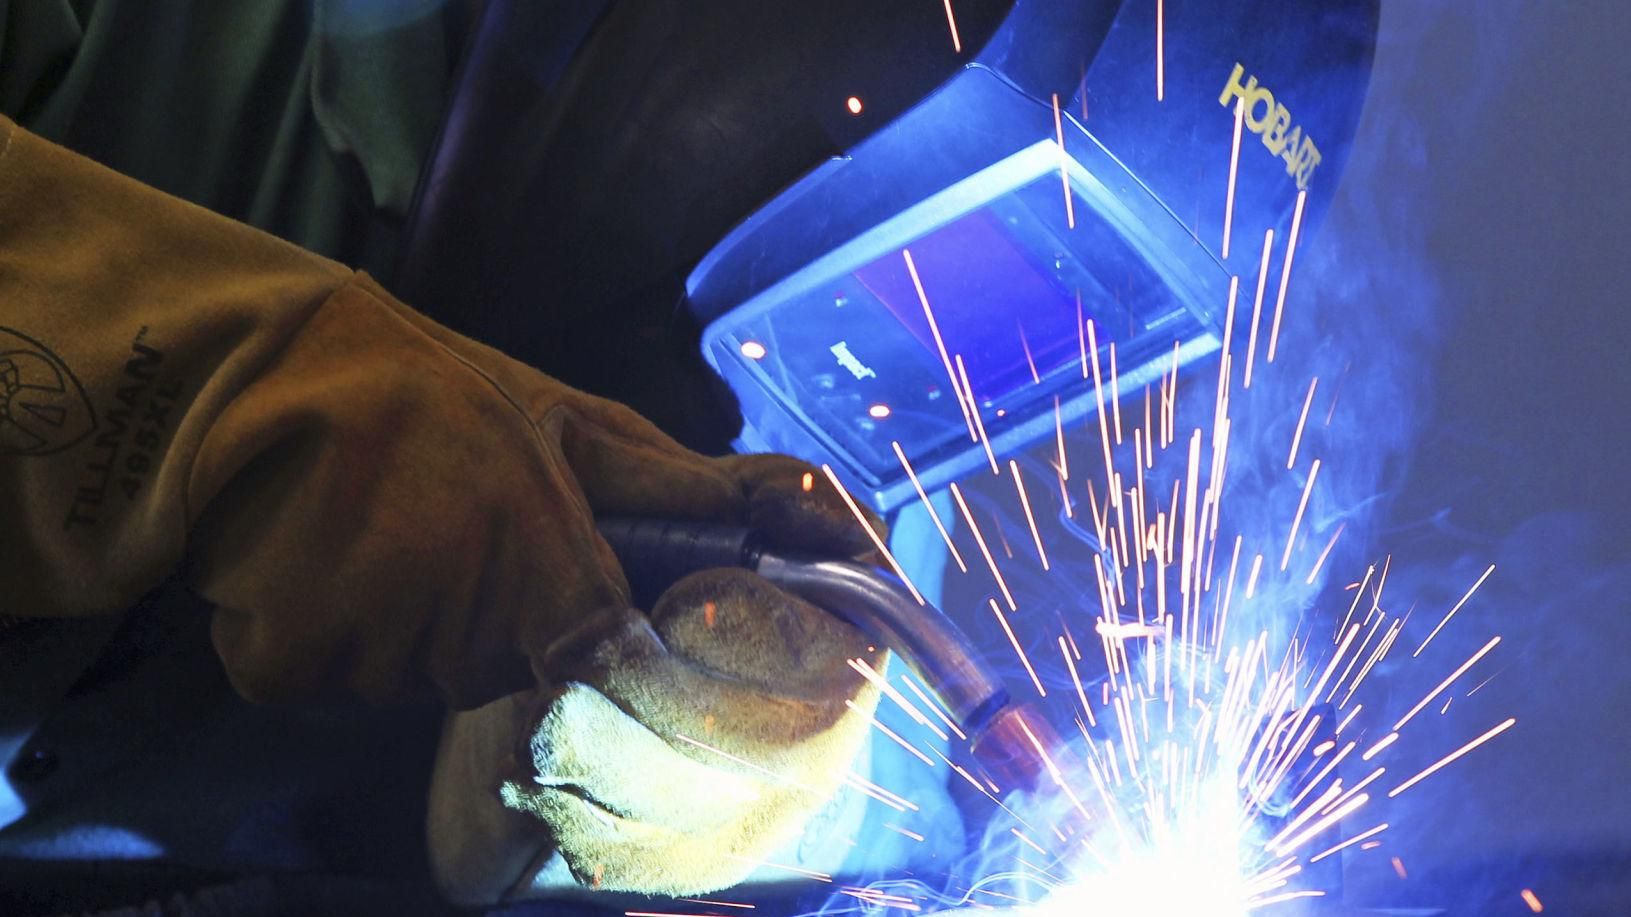 Report: Manufacturing leads April job increases in Decatur; unemployment rises